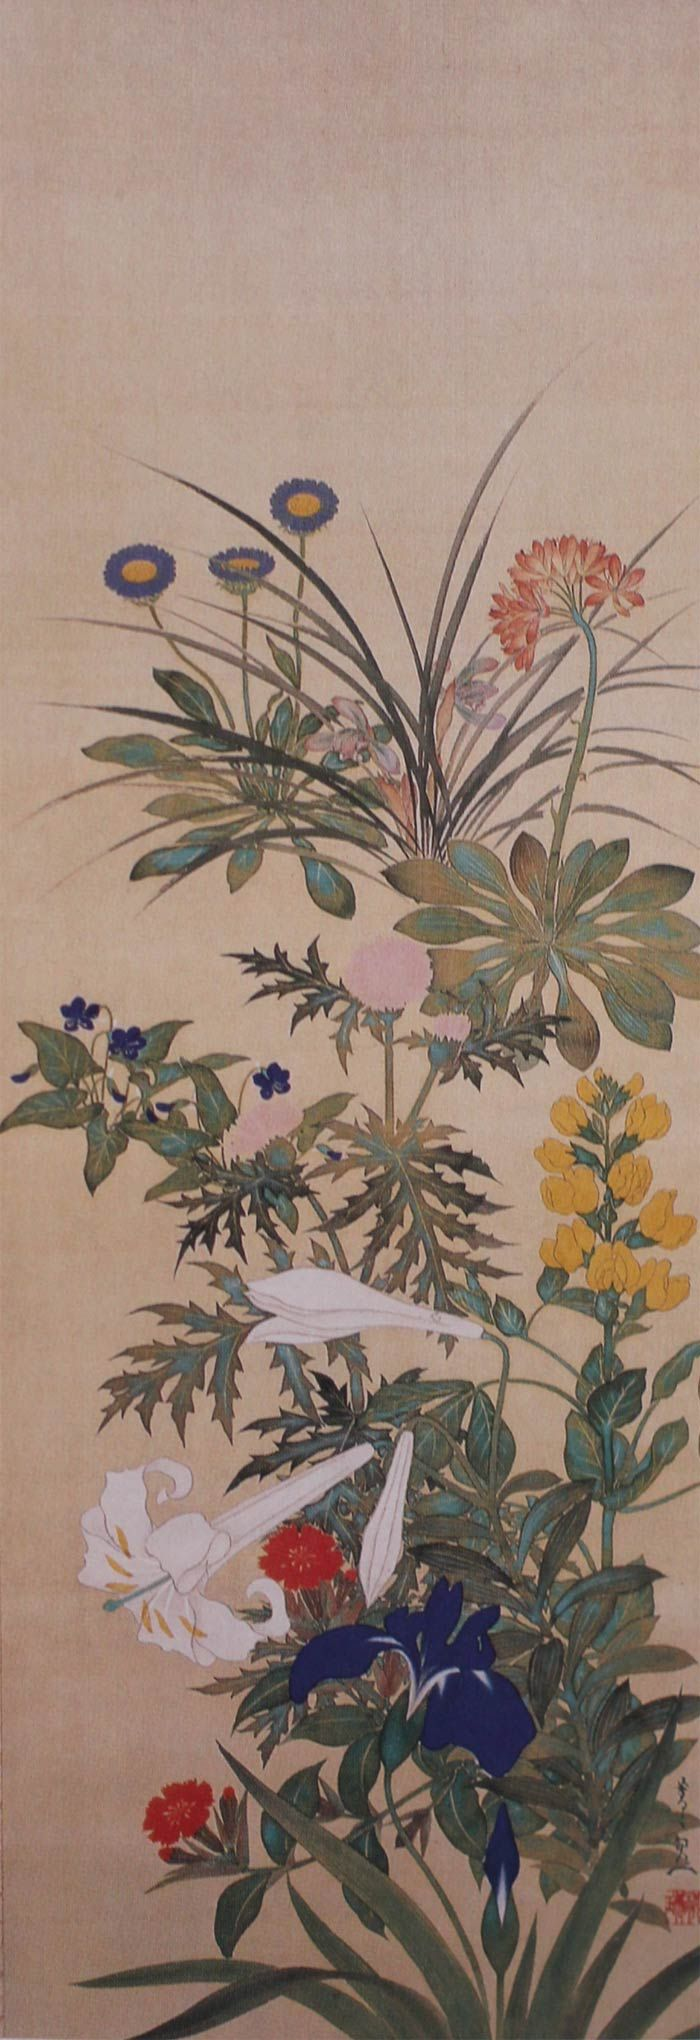 """from book """"A Garden Request, Plants from Japan"""""""